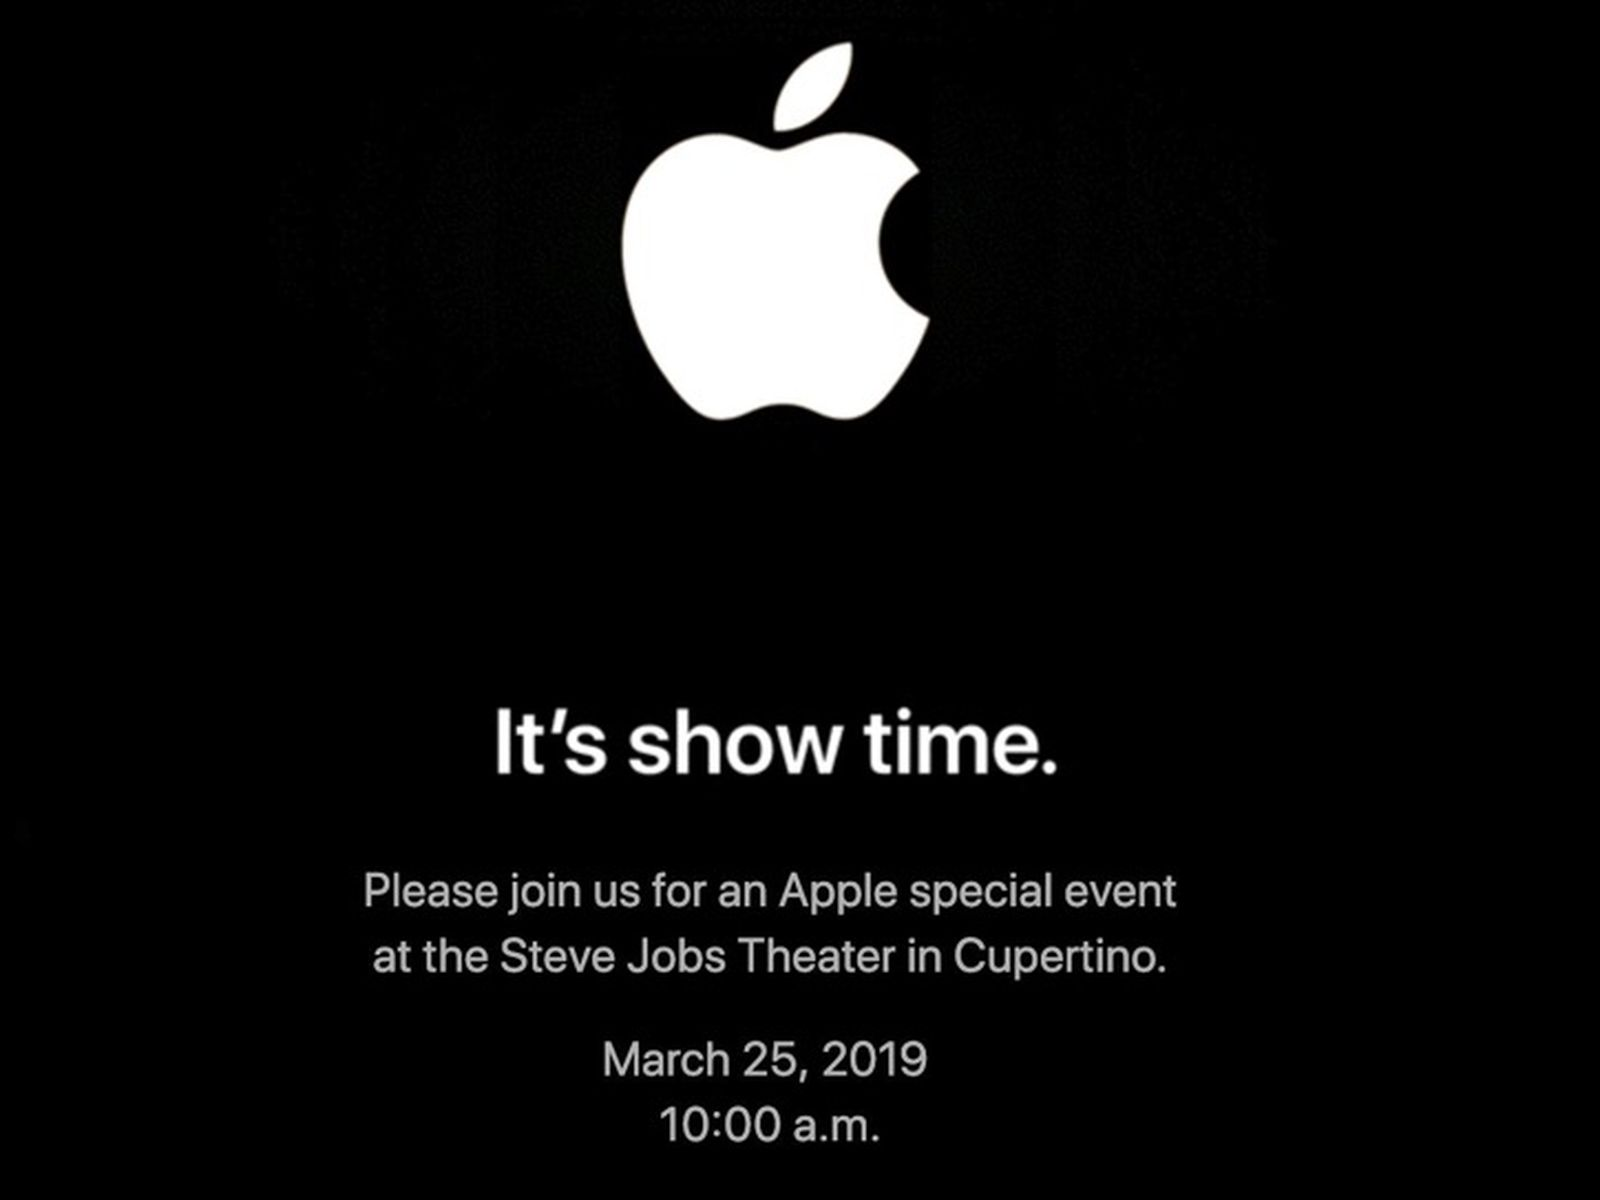 Apple S 2020 Event Plans New Products And Software Coming In 2020 Macrumors